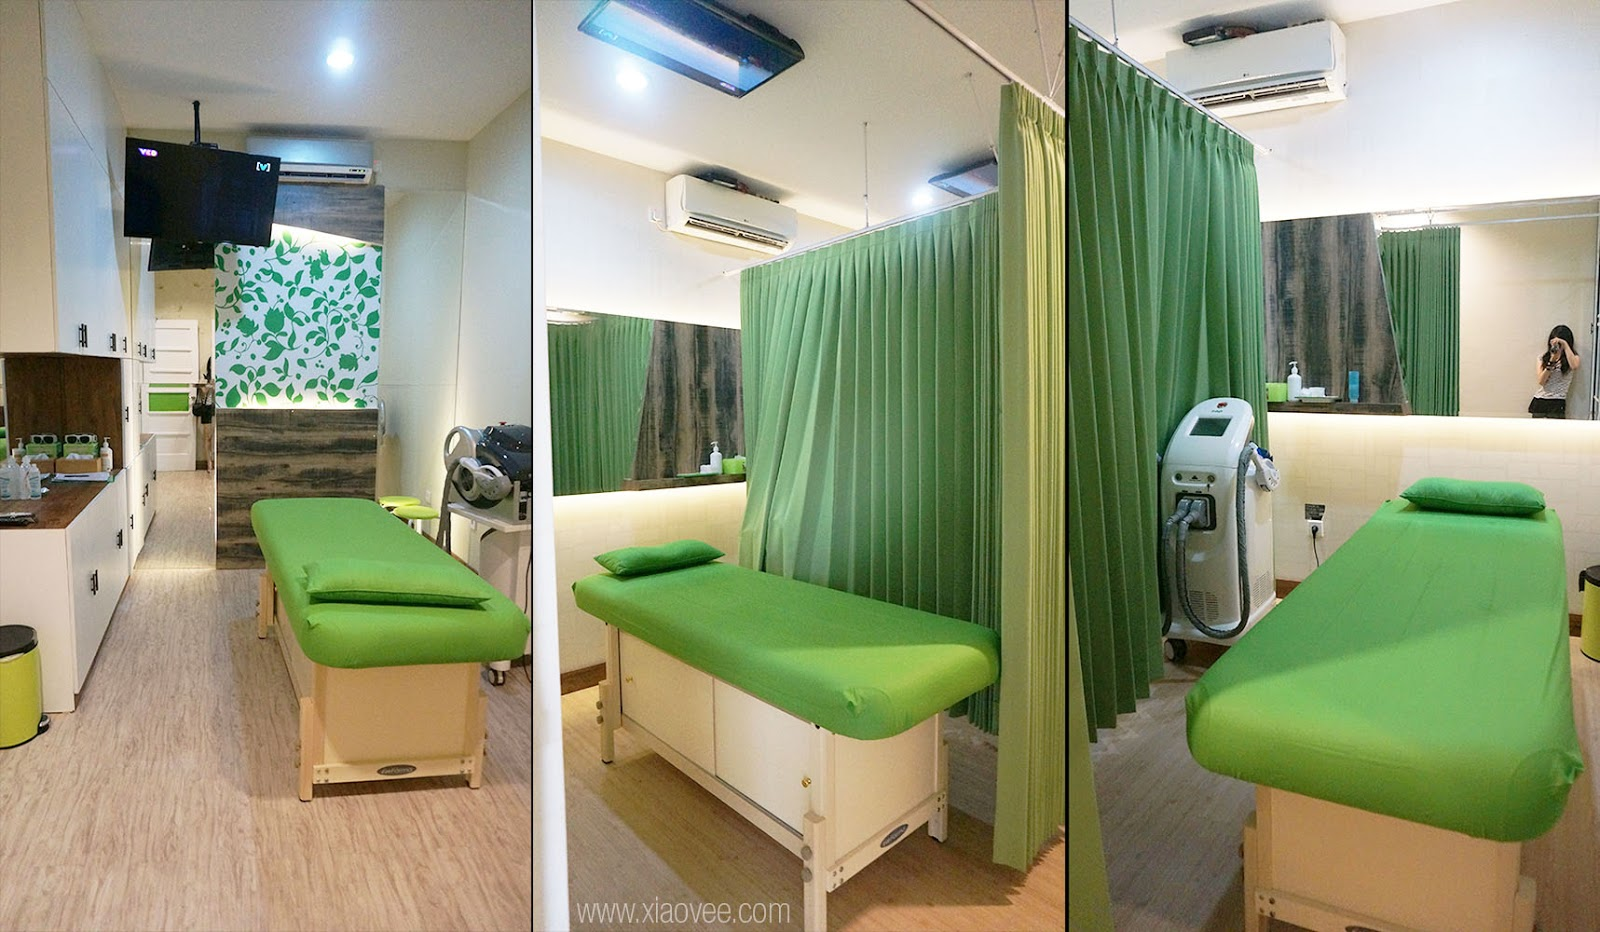 ZAP permanent hair removal, ZAP clinic, ZAP Facial rejuvenation, ZAP Surabaya,